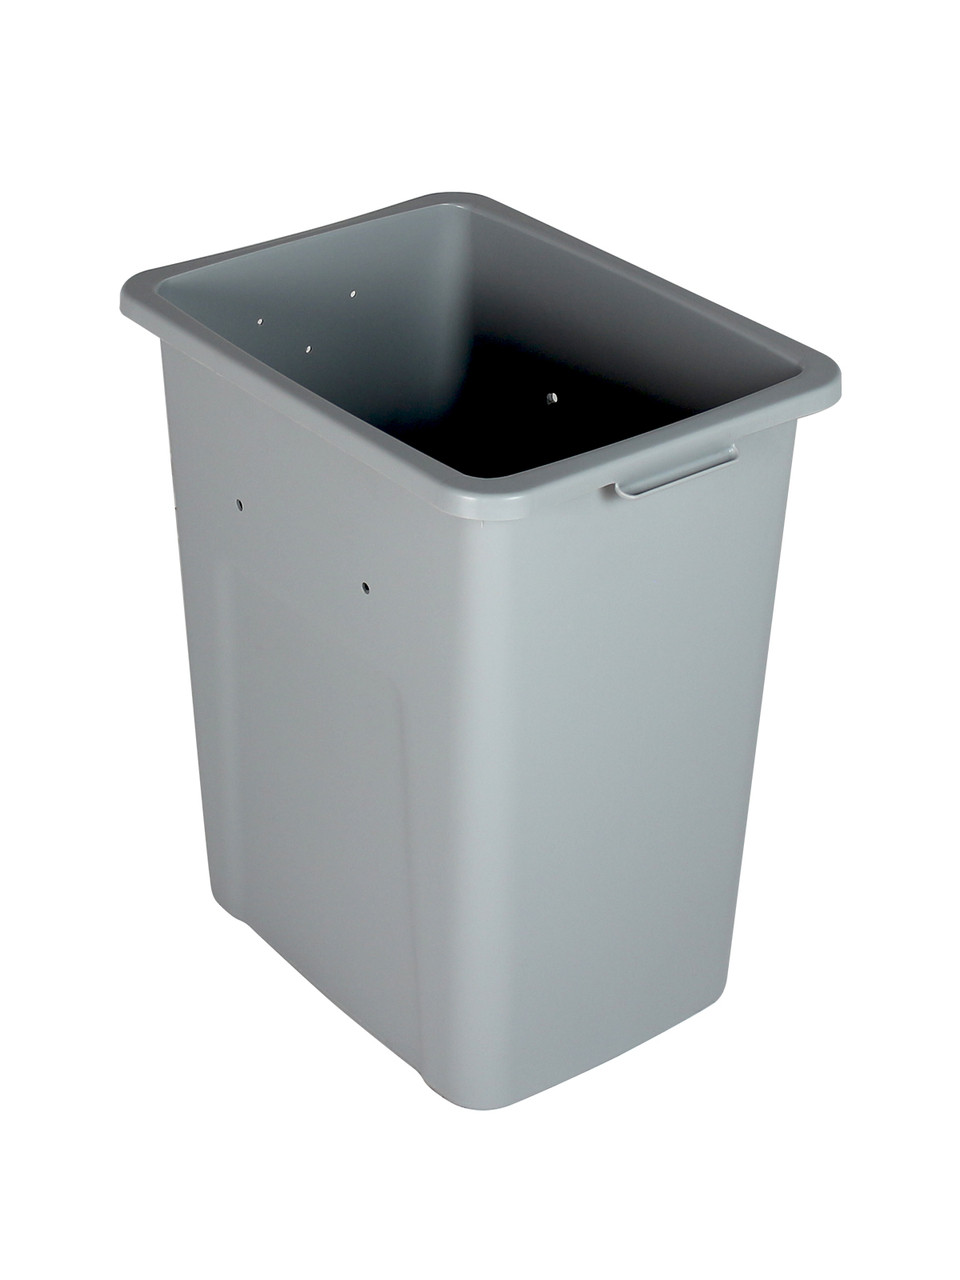 24 Gallon Extra Large Home & Office Trash Can Gray